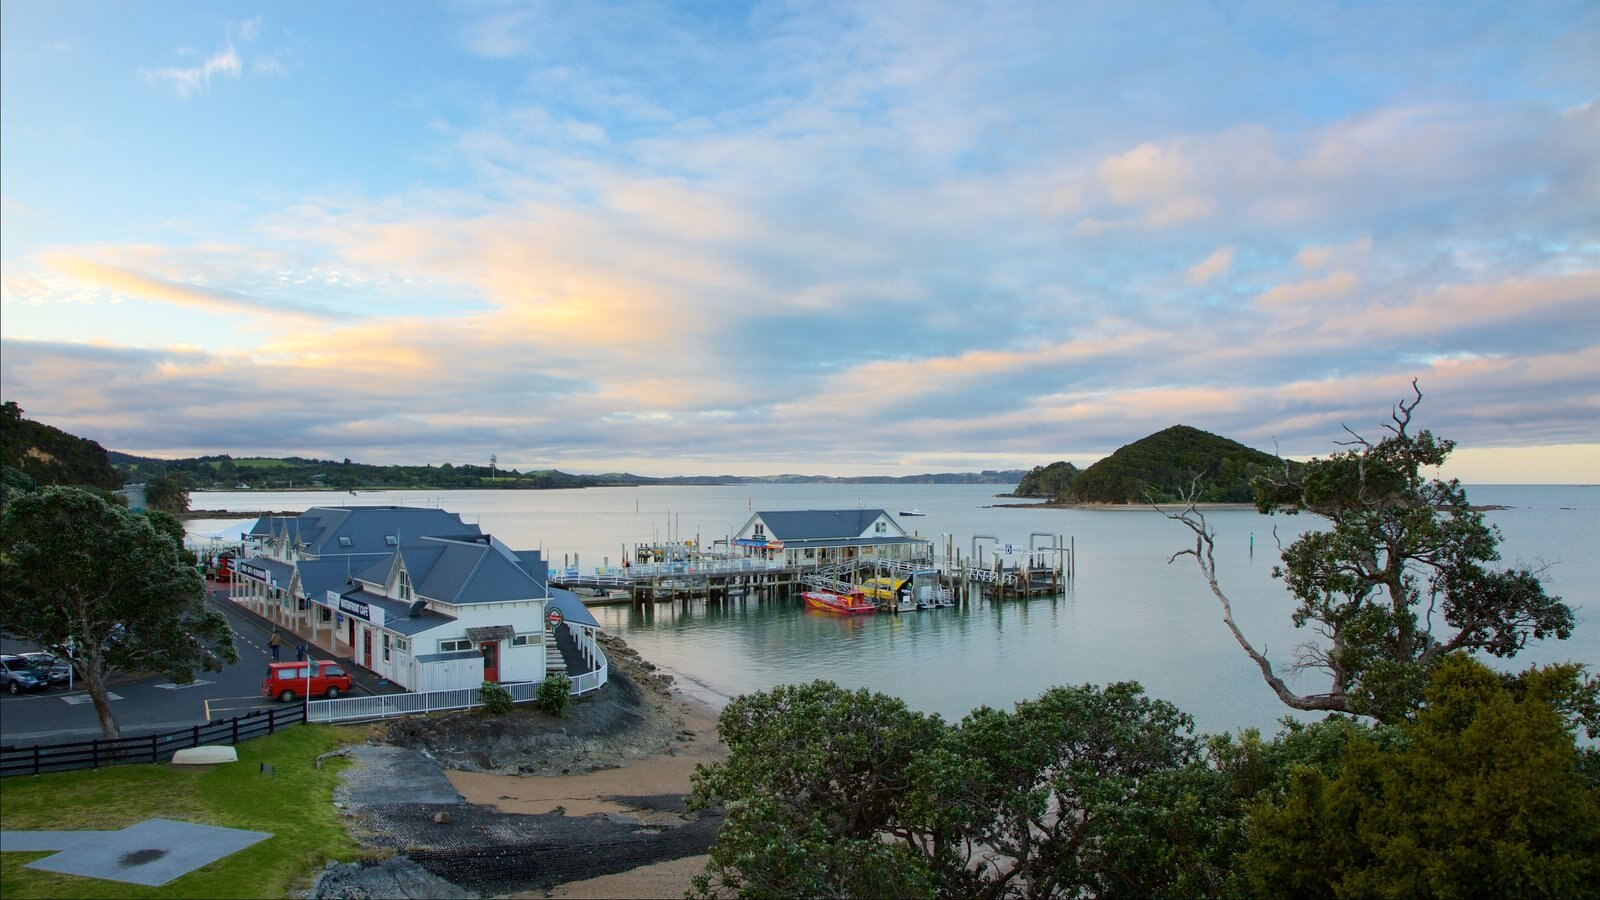 Paihia Wharf showing island views and a bay or harbor